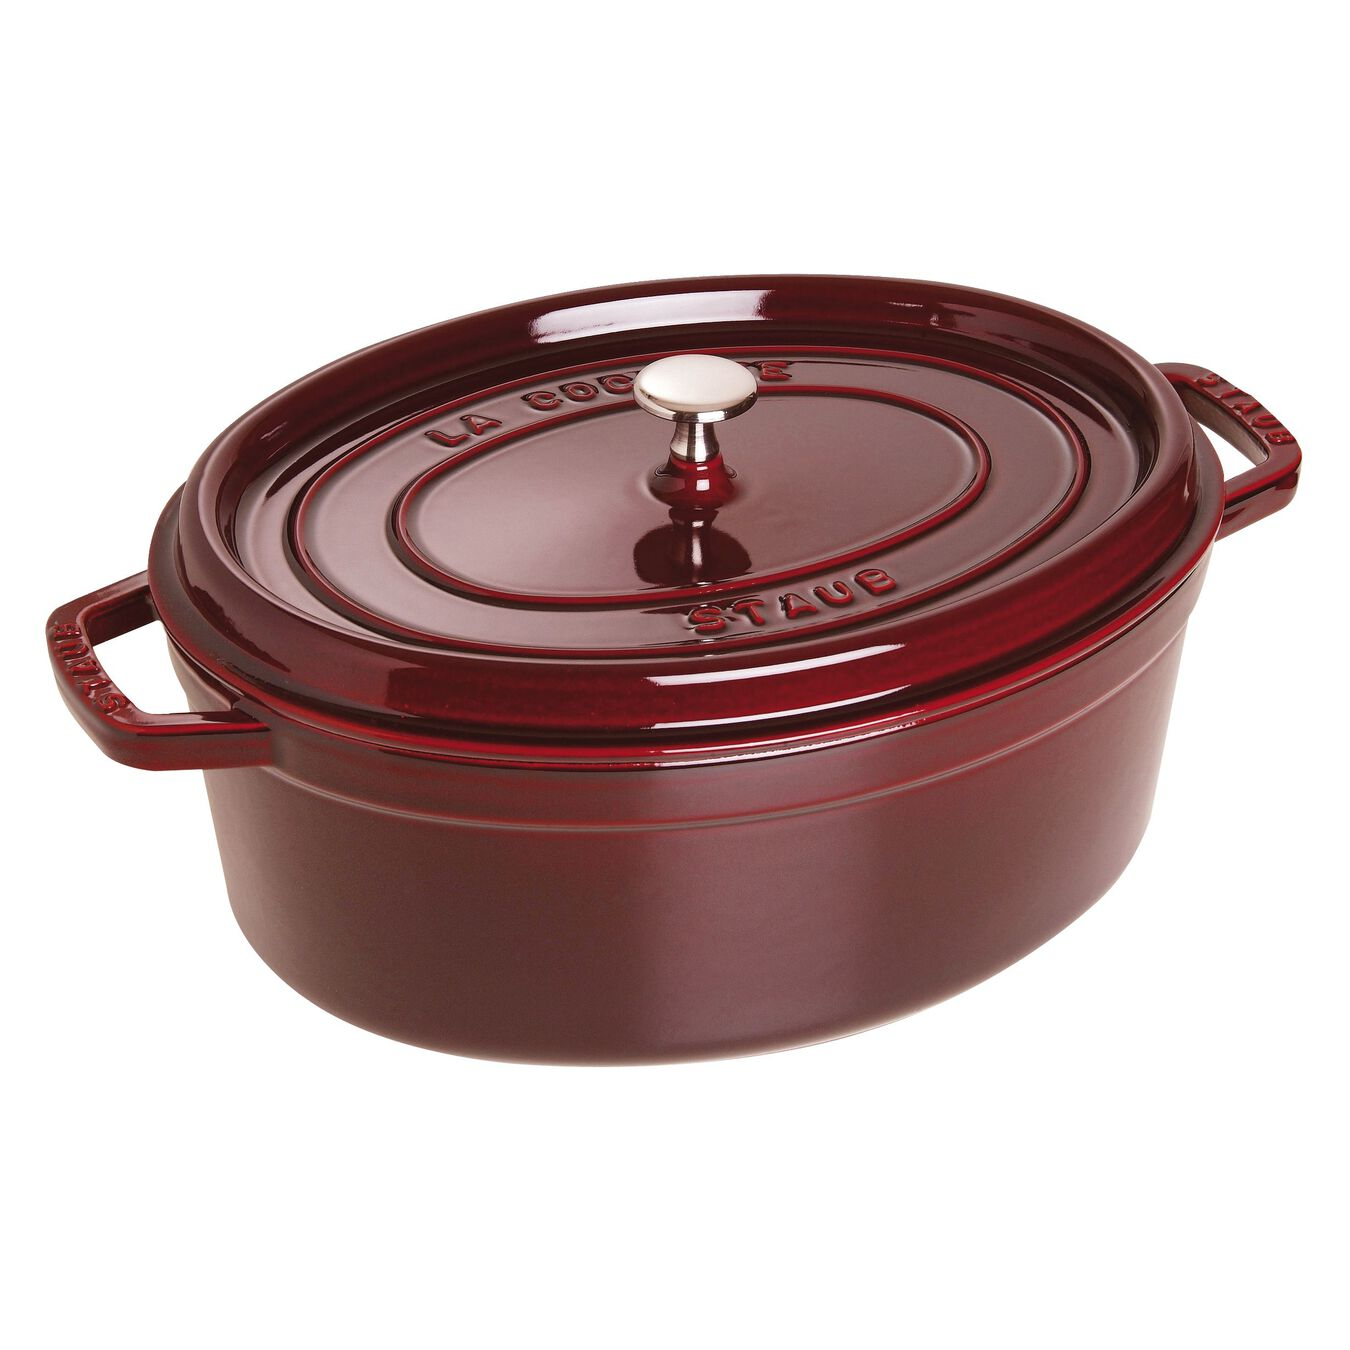 5.5 l Cast iron oval Cocotte, Grenadine-Red,,large 1